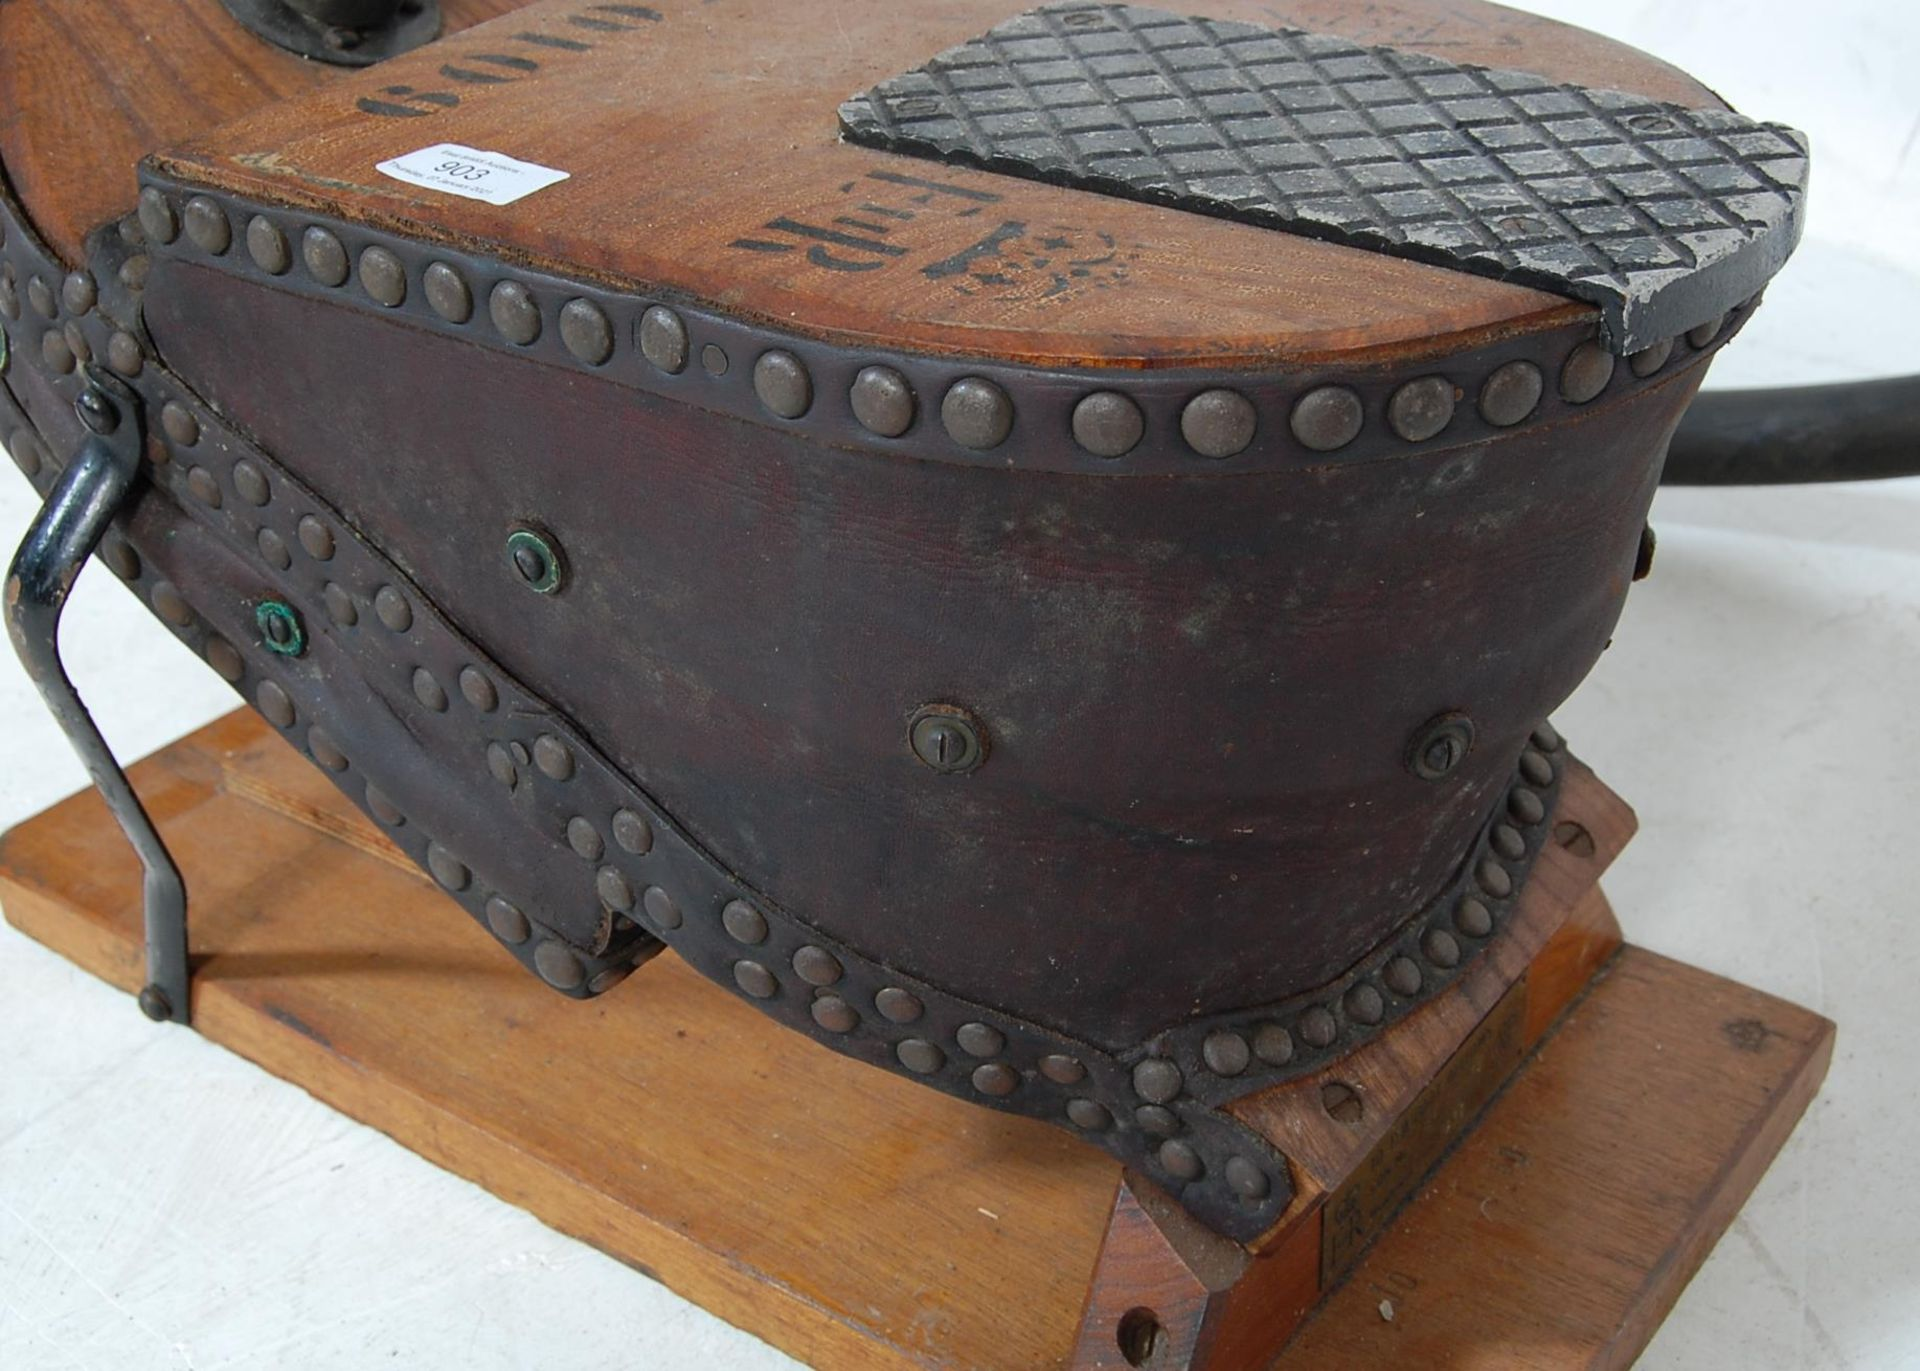 ER ROYAL CIPHER MARKER DIVERS / BLACKSMITH BELLOWS - Image 4 of 4